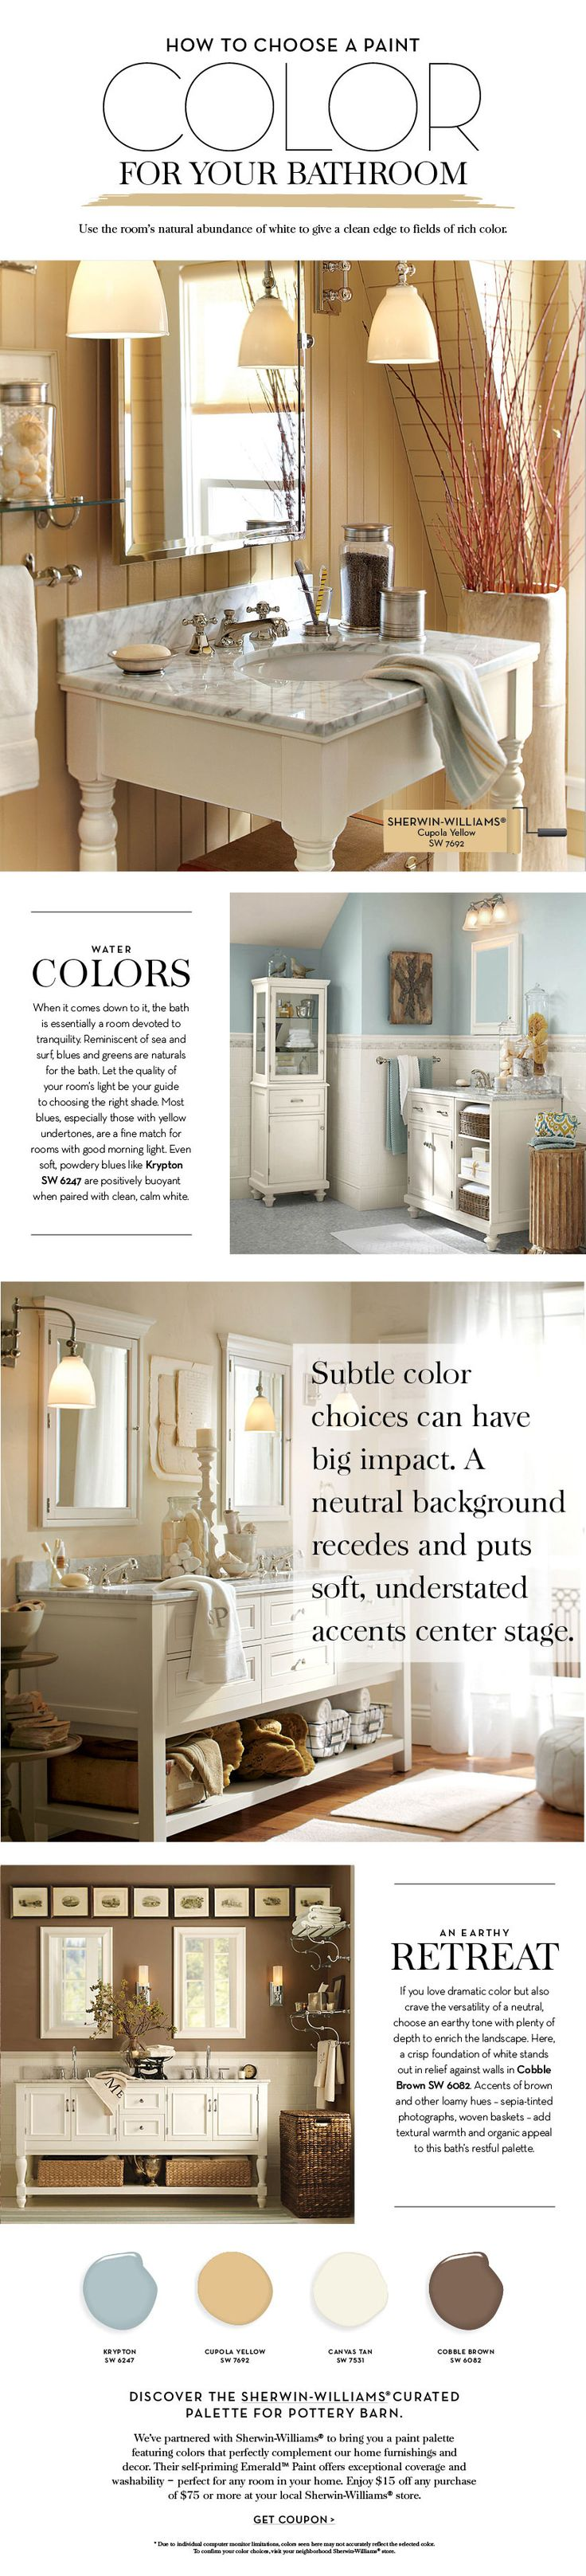 Choose a Paint Color For Your Bathroom | Pottery Barn